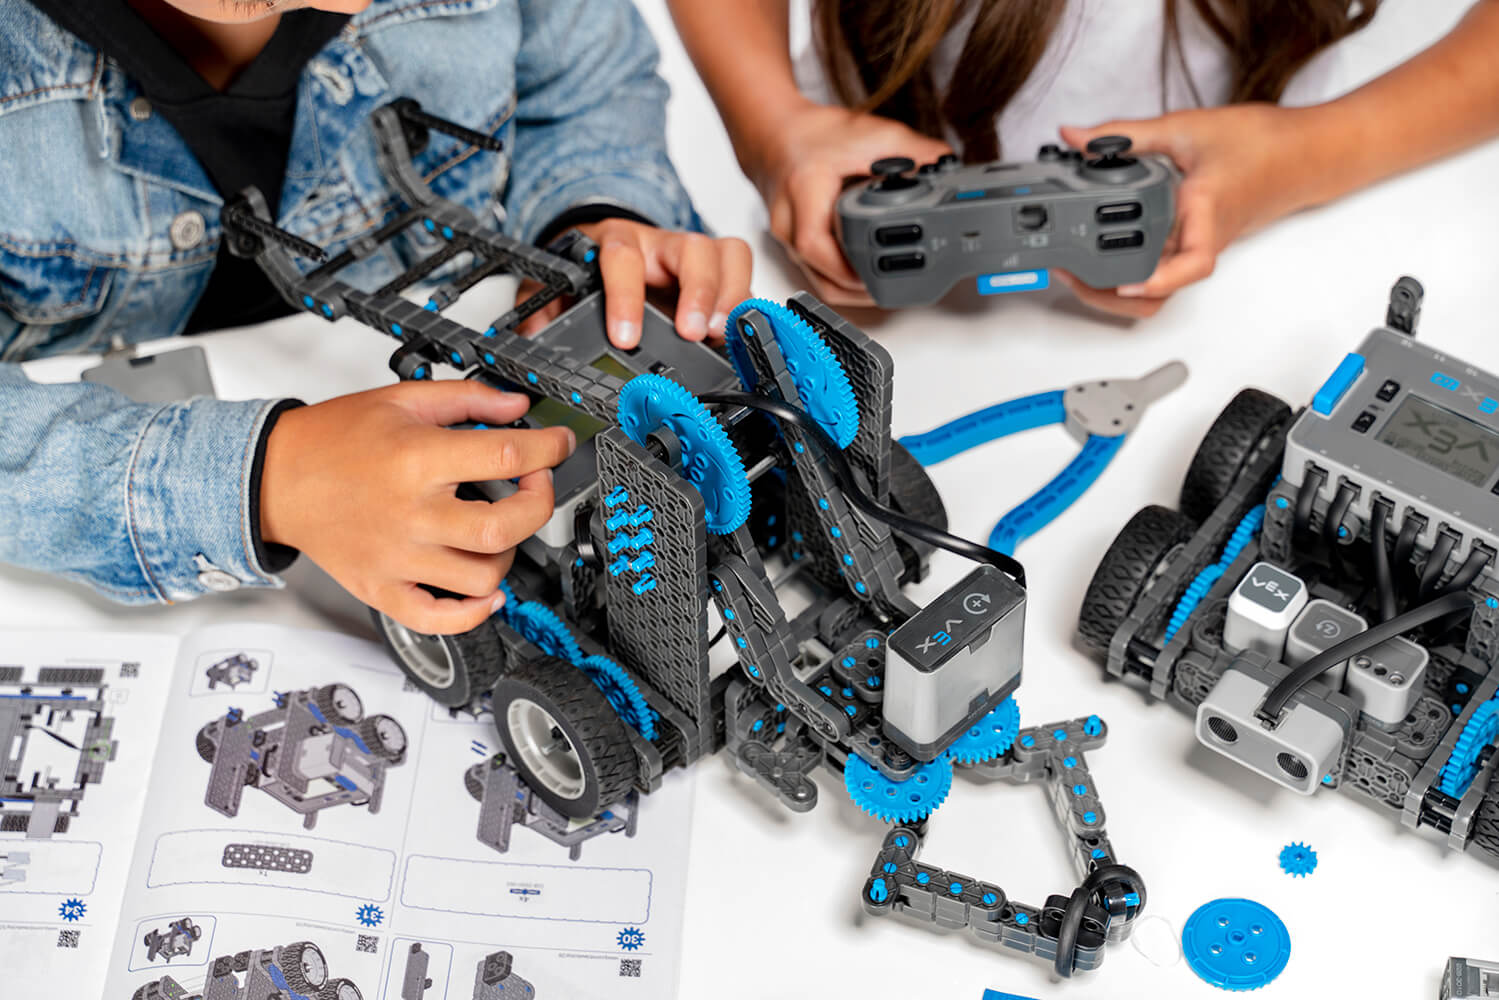 Kids at desk with VEX IQ Robot